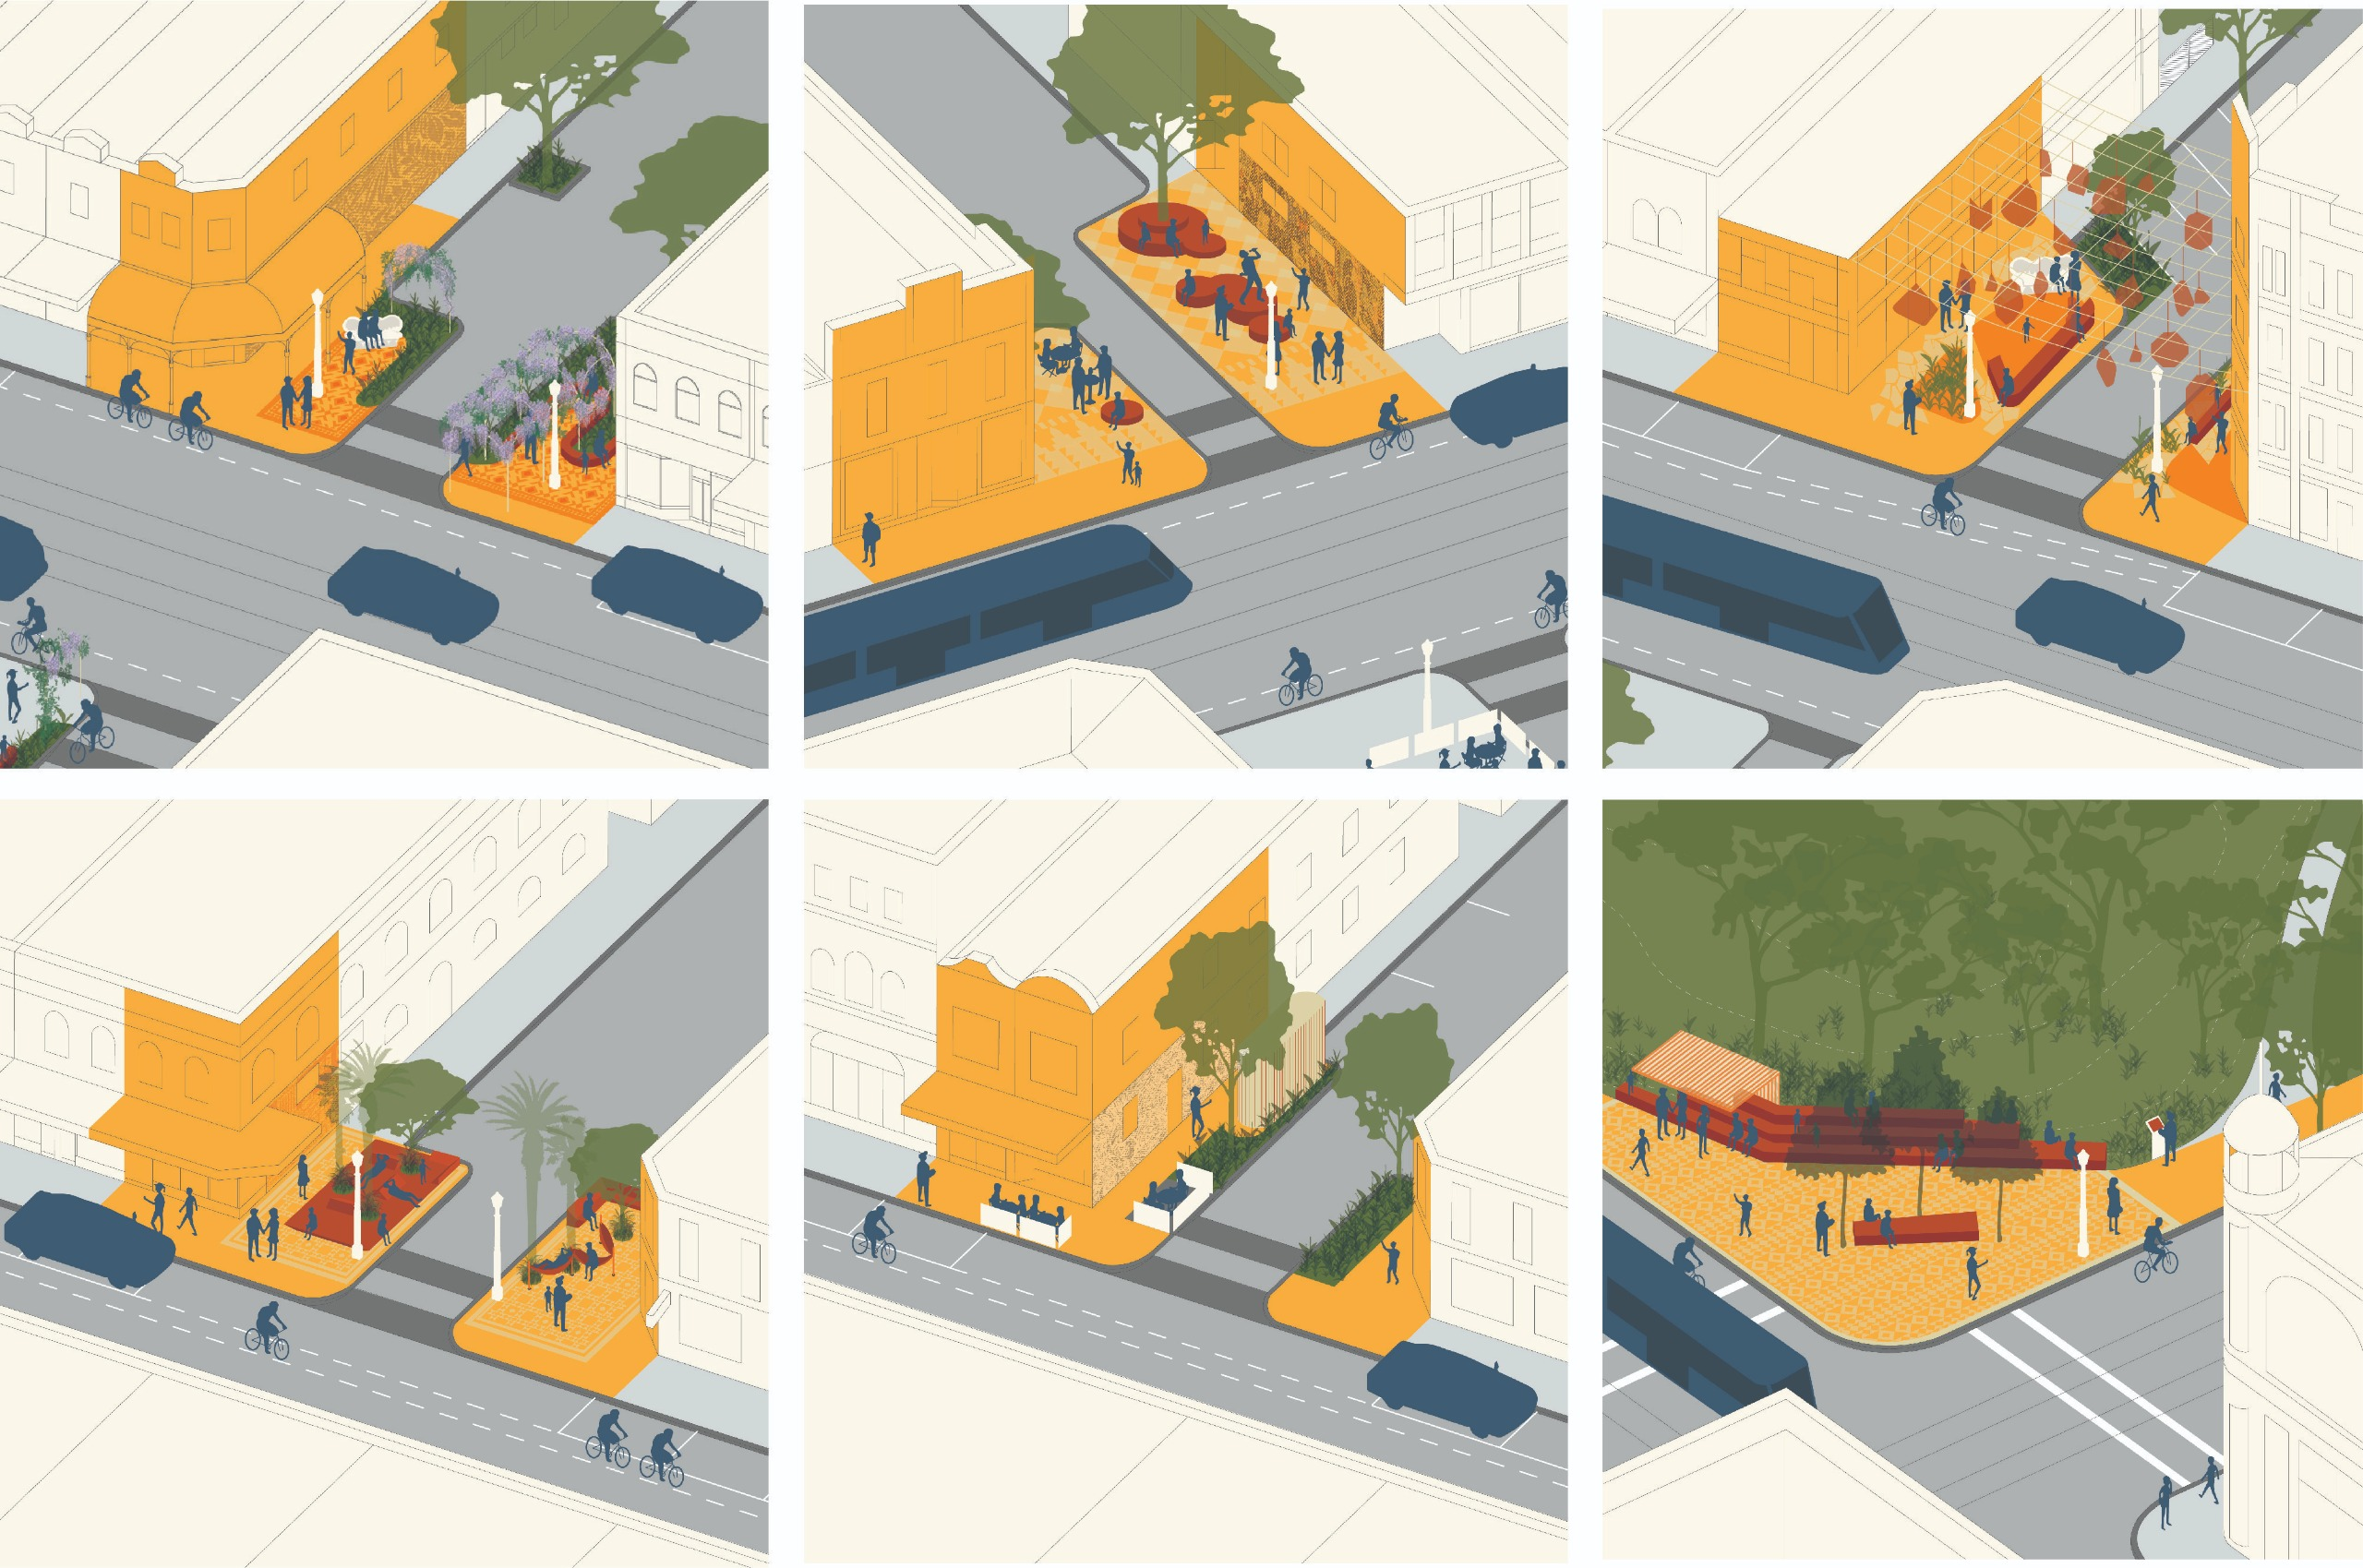 Designs of street corners showing different styles of community spaces, including small gardens, lighting features, seating options and public art